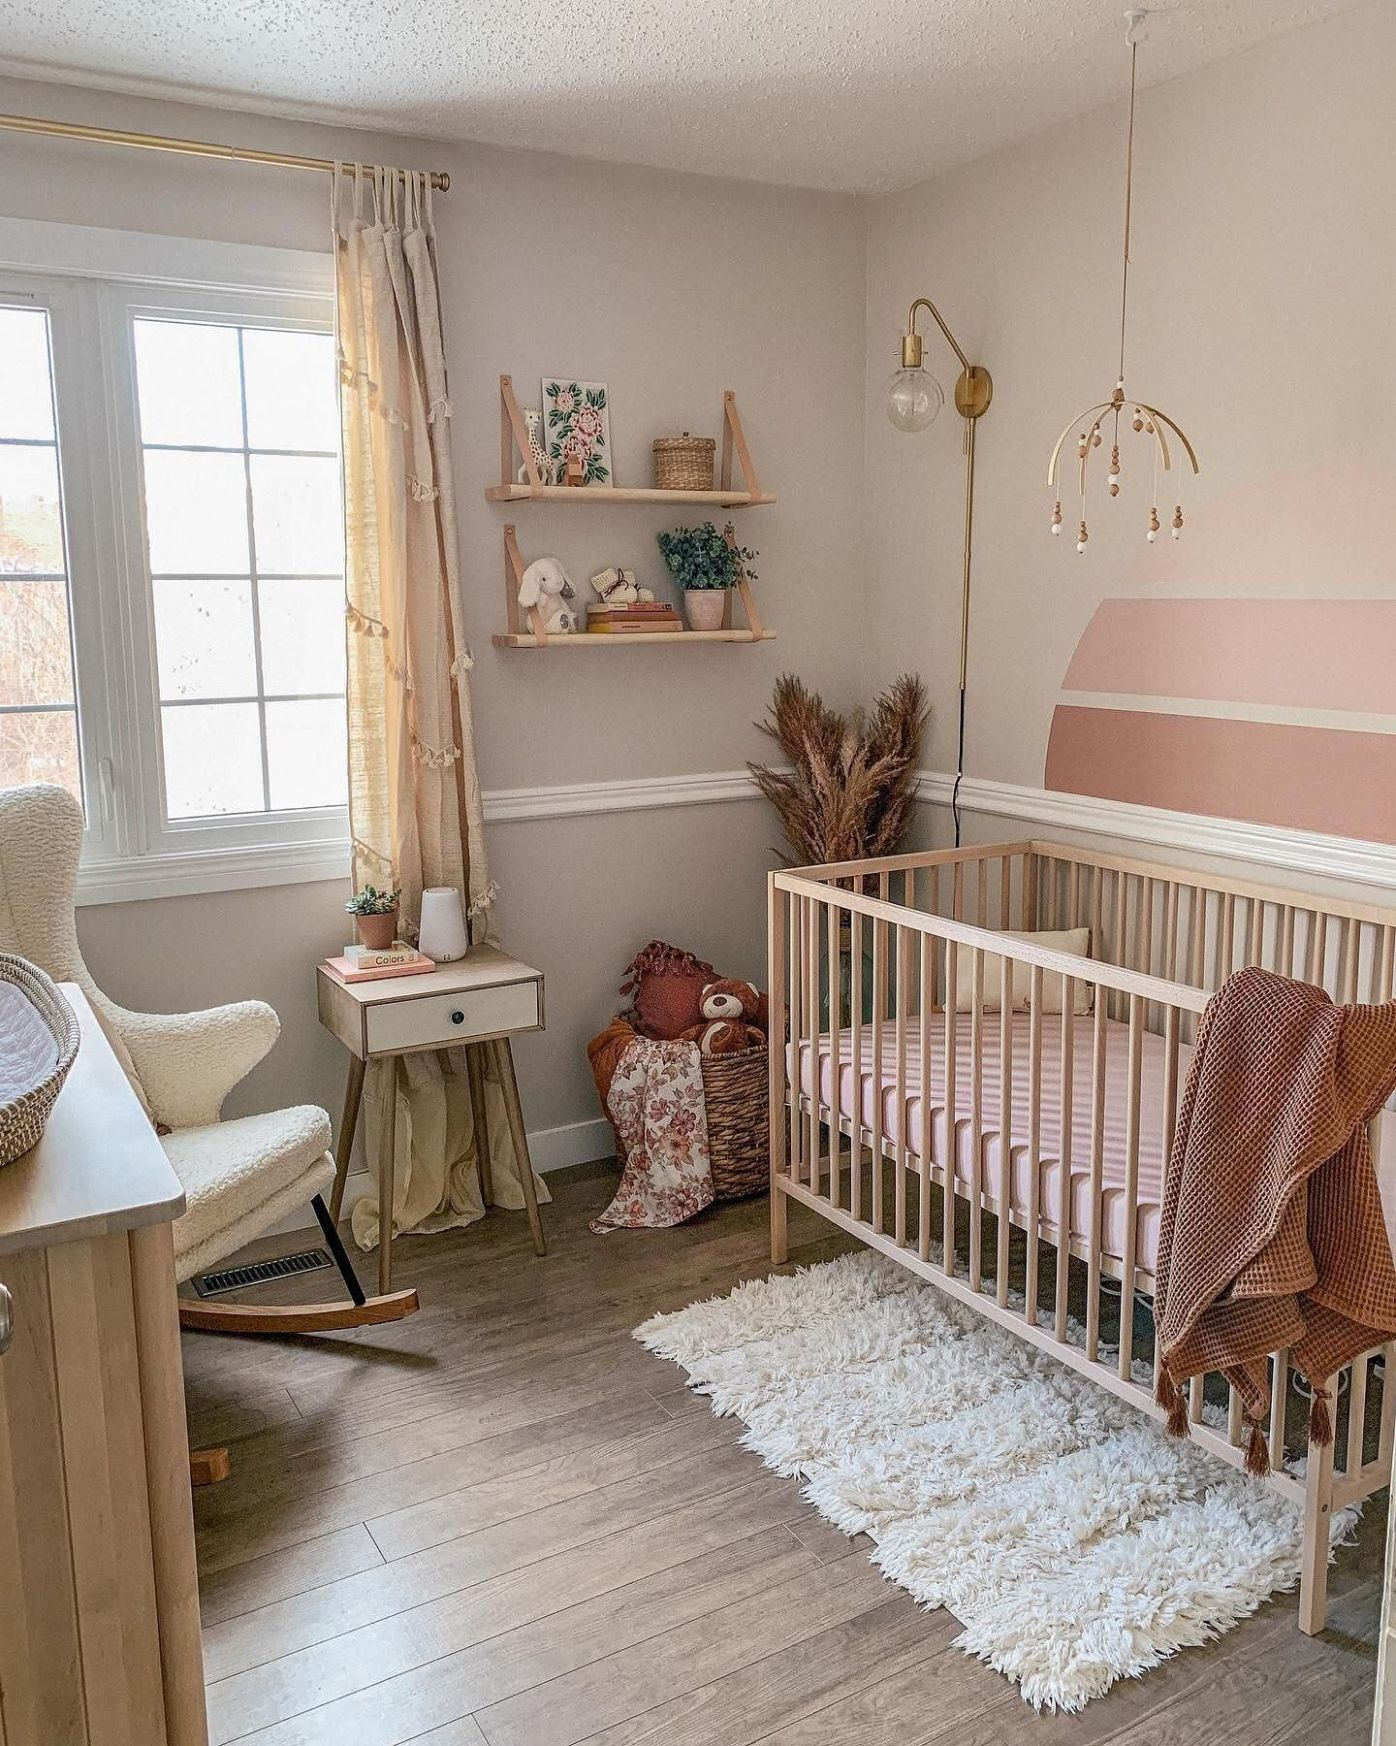 Pin on Southwest-Inspired Nursery Ideas - baby room mid valley